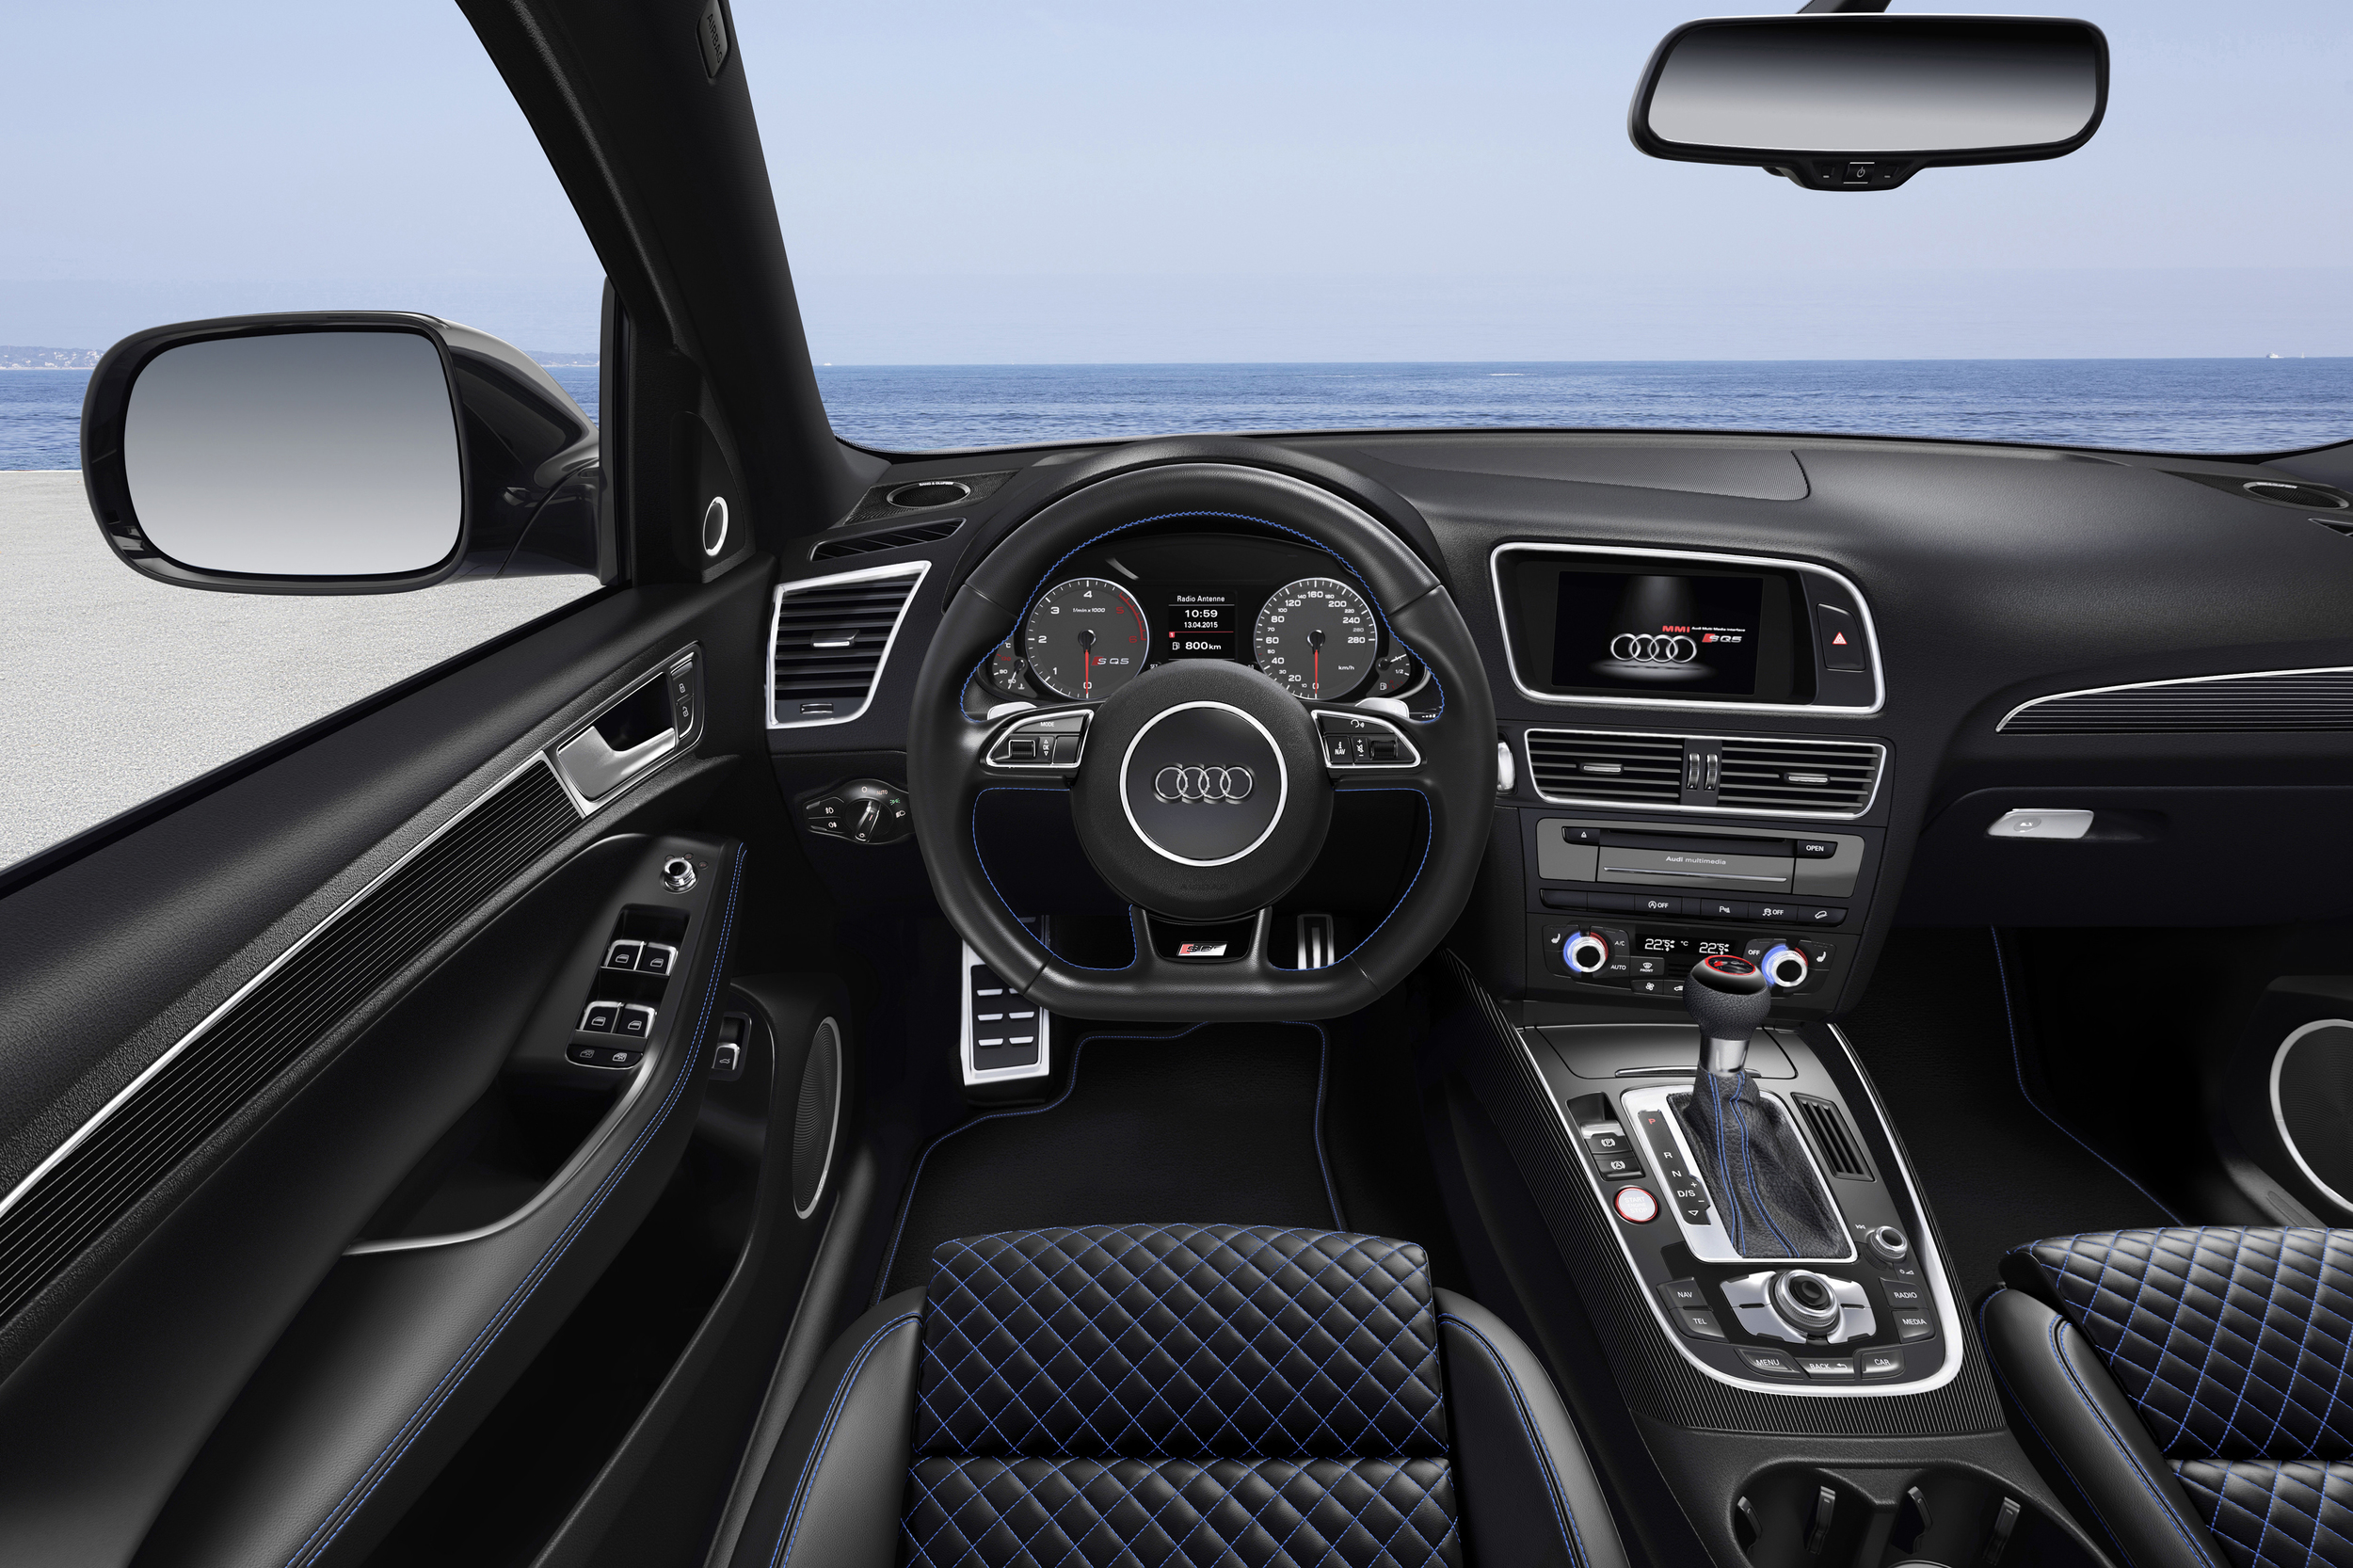 2016 Audi Sq5 Tdi Plus Cockpit Interior (Photo 3 of 9)